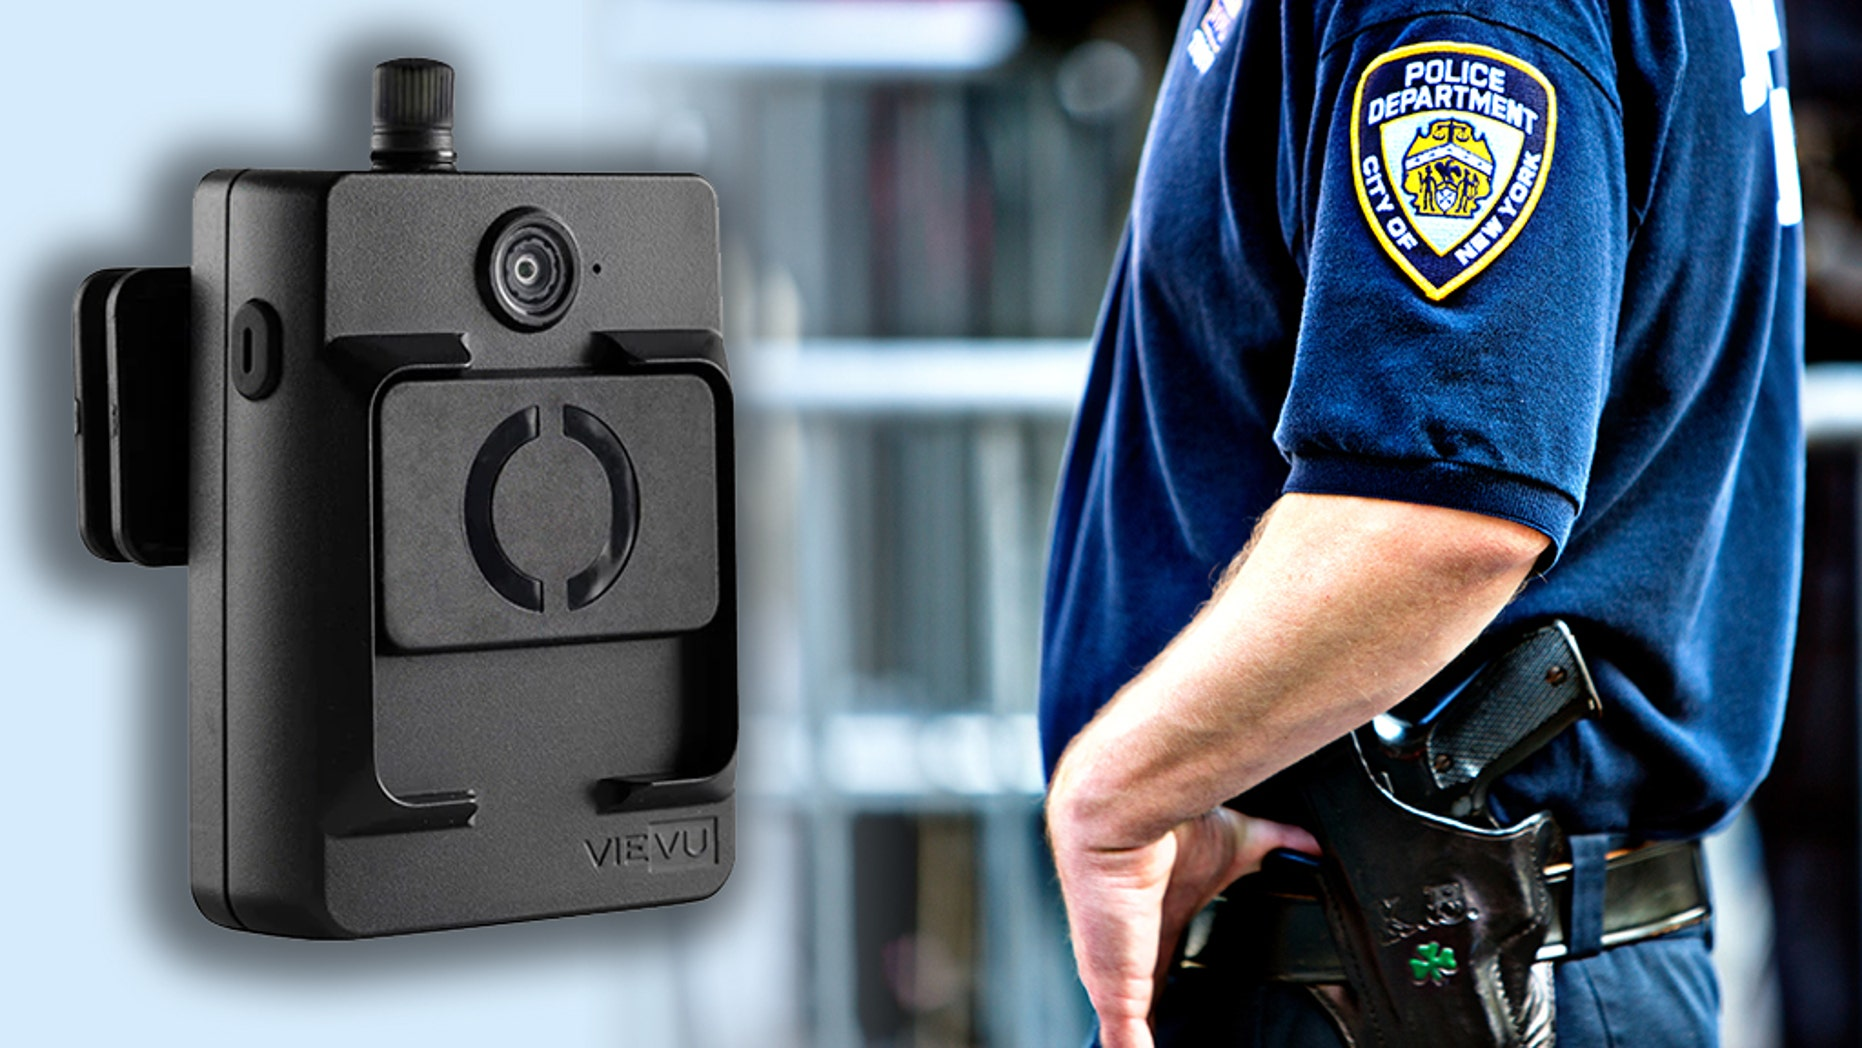 NYPD Body Cam Explodes, Police Recall Nearly 3,000 Devices